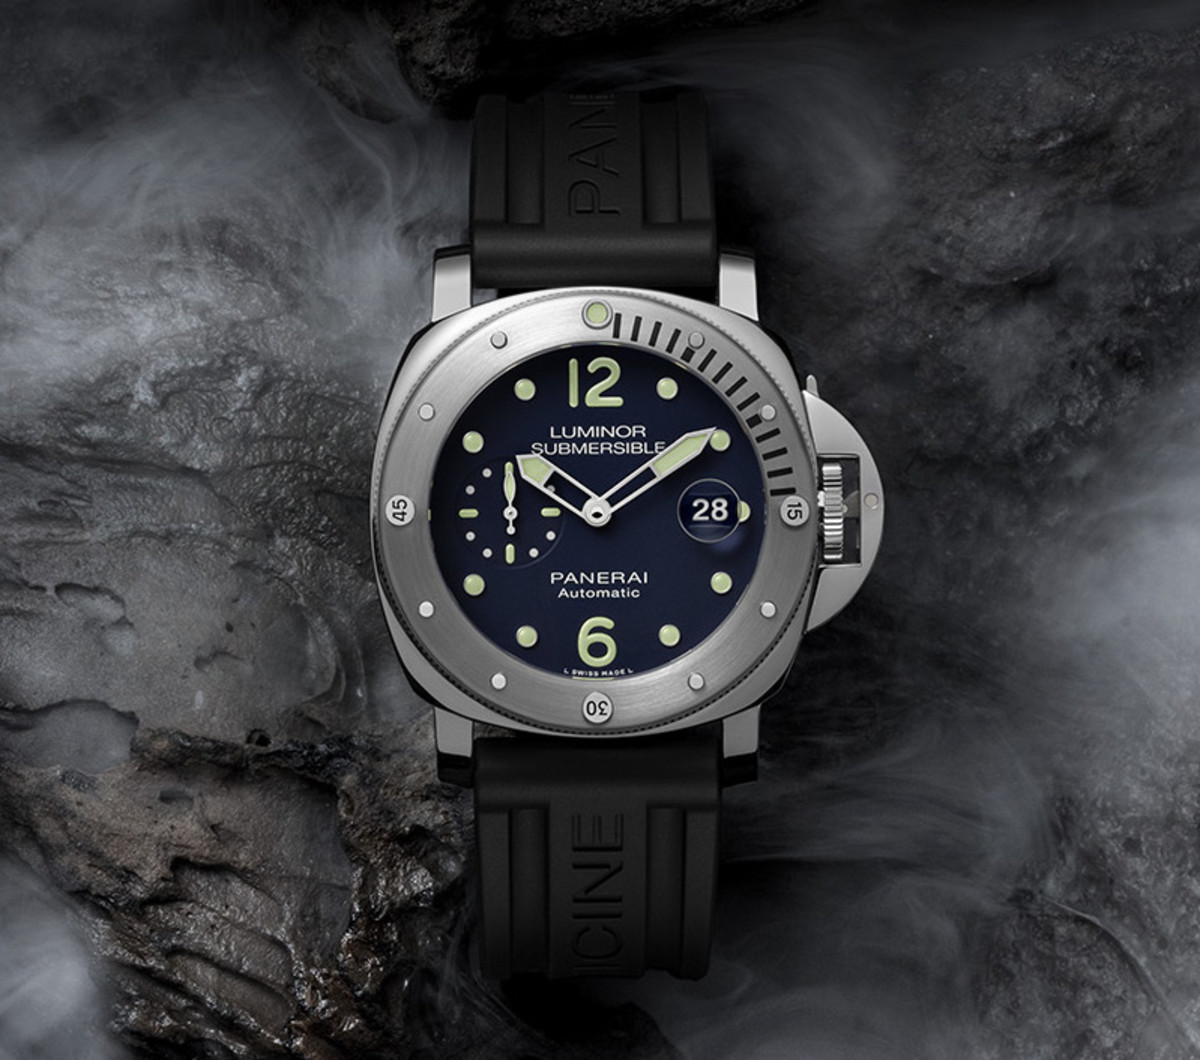 Panerai Luminor Submersible E-Commerce Exclusive